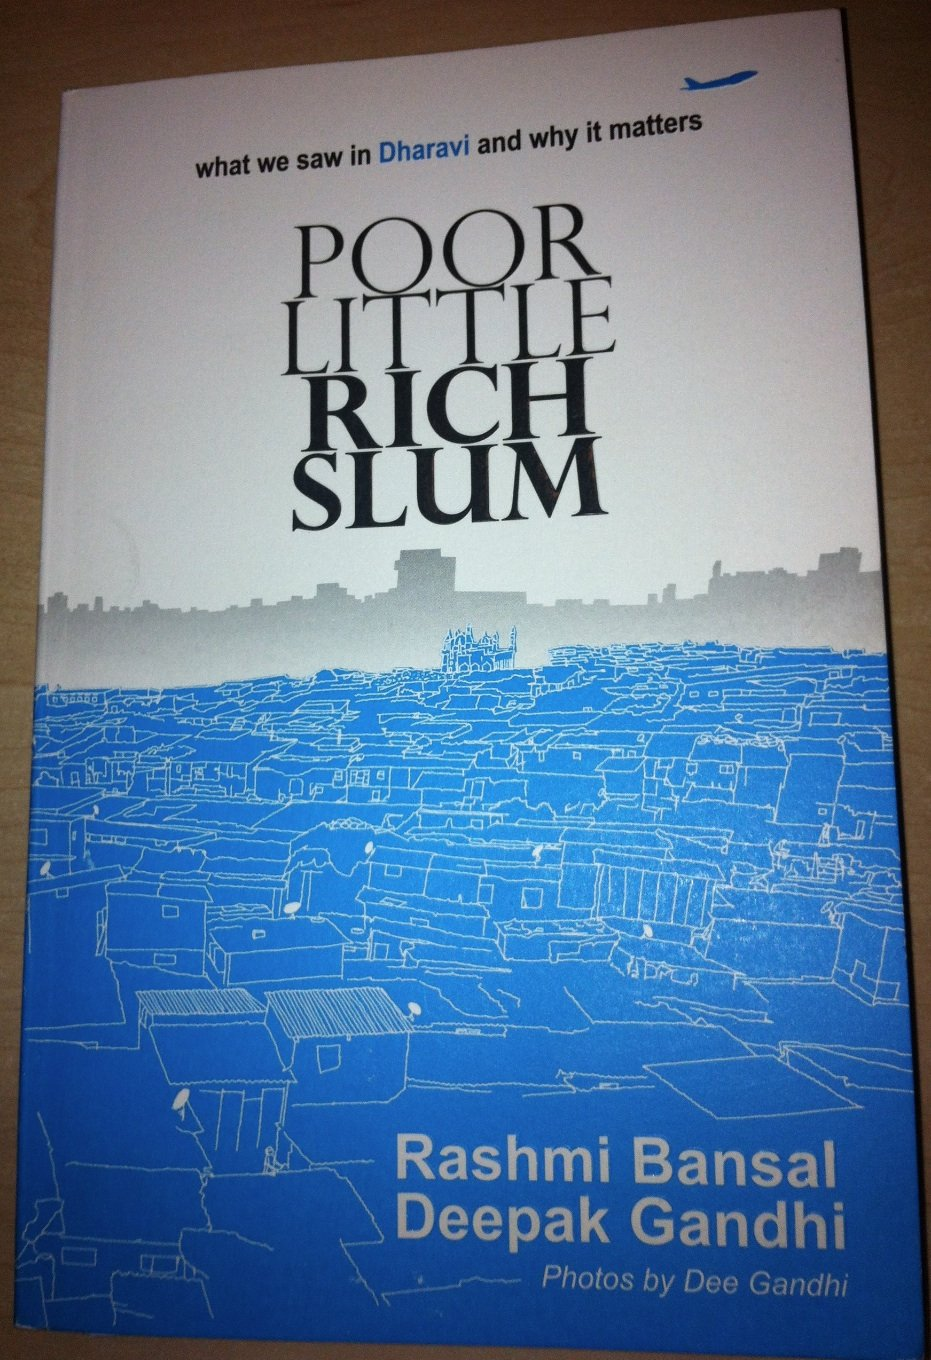 POOR LITTLE RICH SLUM by Rashmi Bansal & Deepak Gandhi